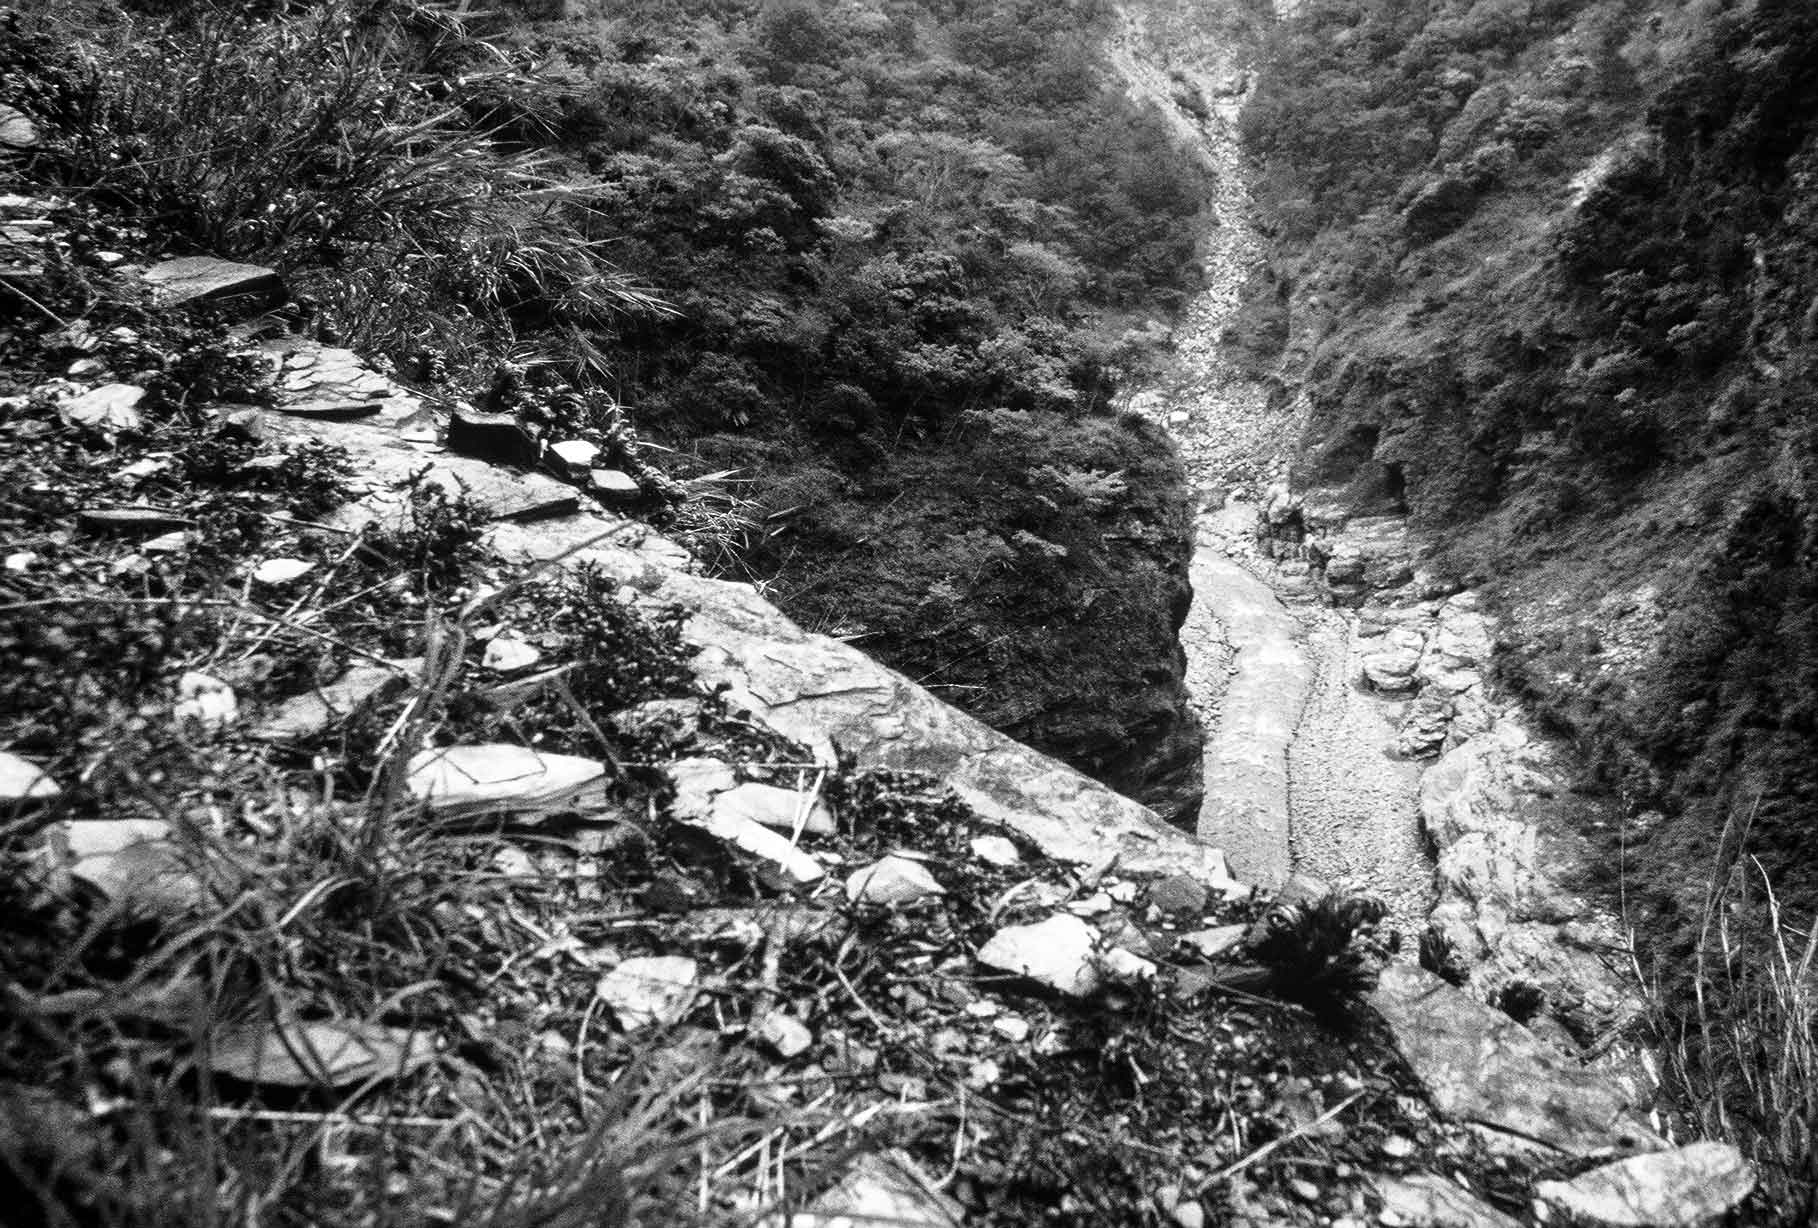 Figure 4: Remains of the Japanese police station cordon trail above the Lu Ye River, Laipunuk | Taiwan Bunun Research | Dr Steven A Martin | SAGE Ethnography